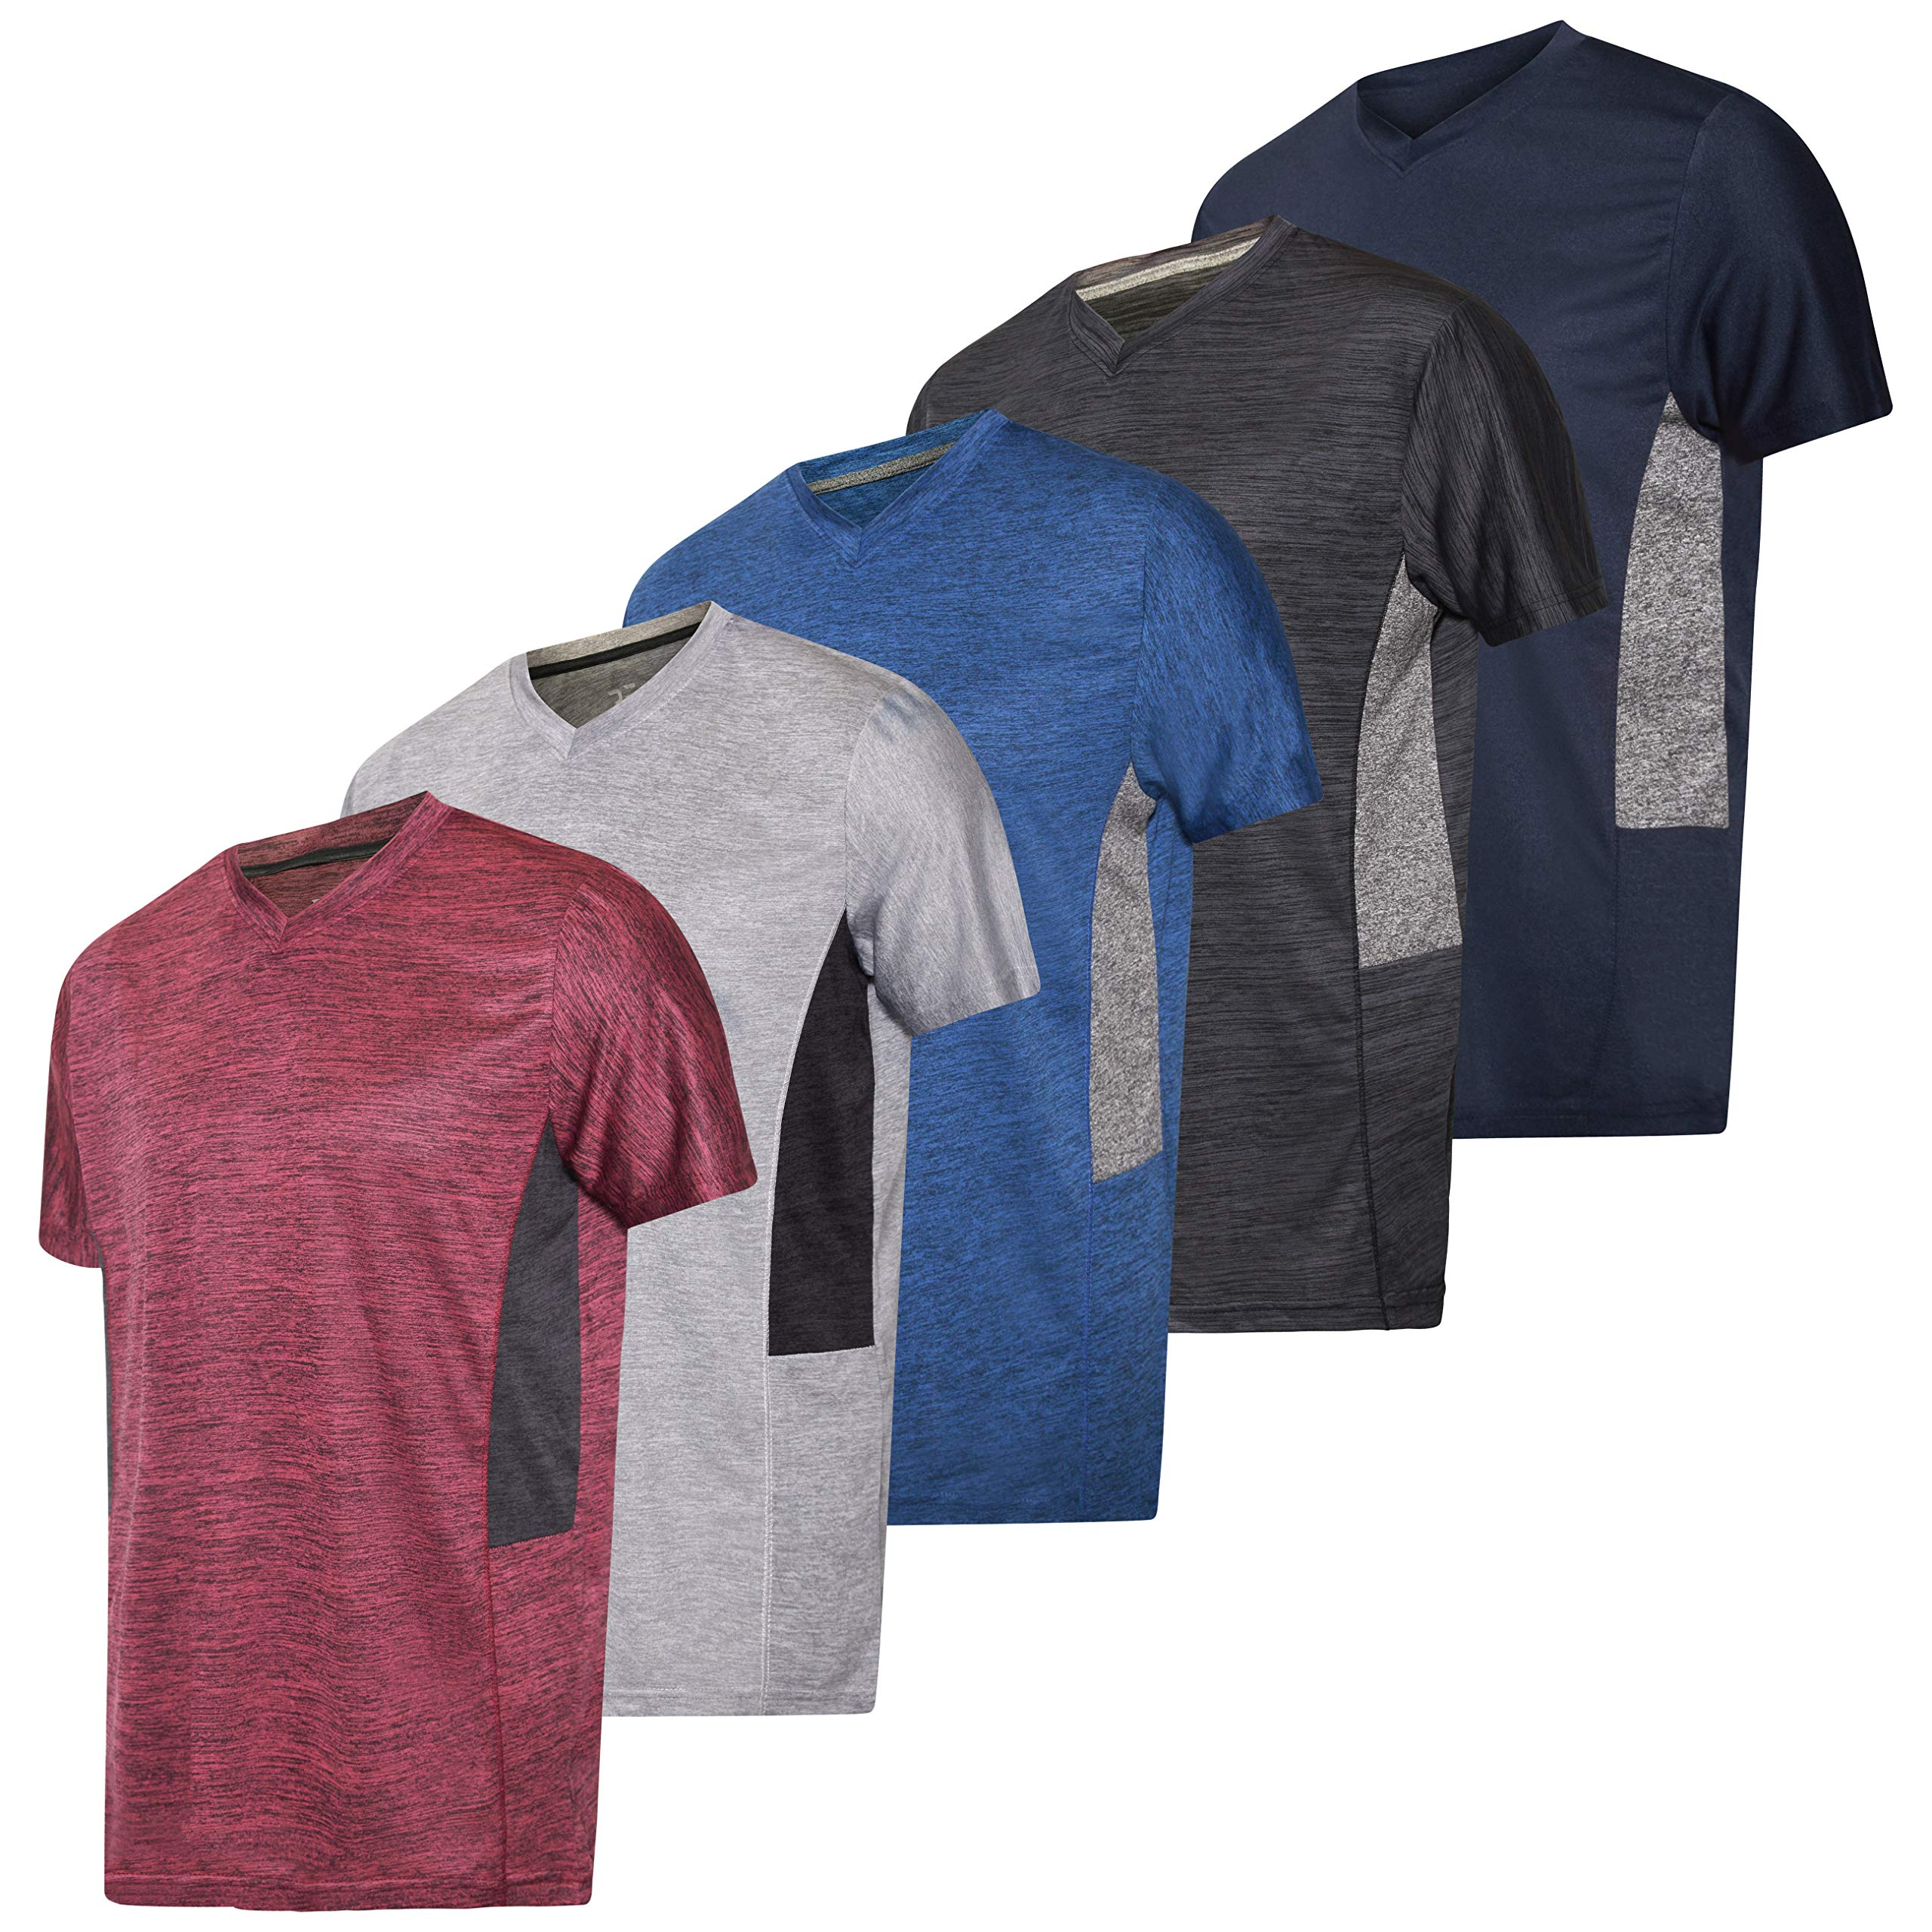 5 Pack:Men's V Neck Quick Dry Fit Dri-Fit Short Sleeve Active Wear Training Athletic Essentials T-Shirt Tee Fitness Gym Workout Undershirt Top-Set 5,S by Real Essentials